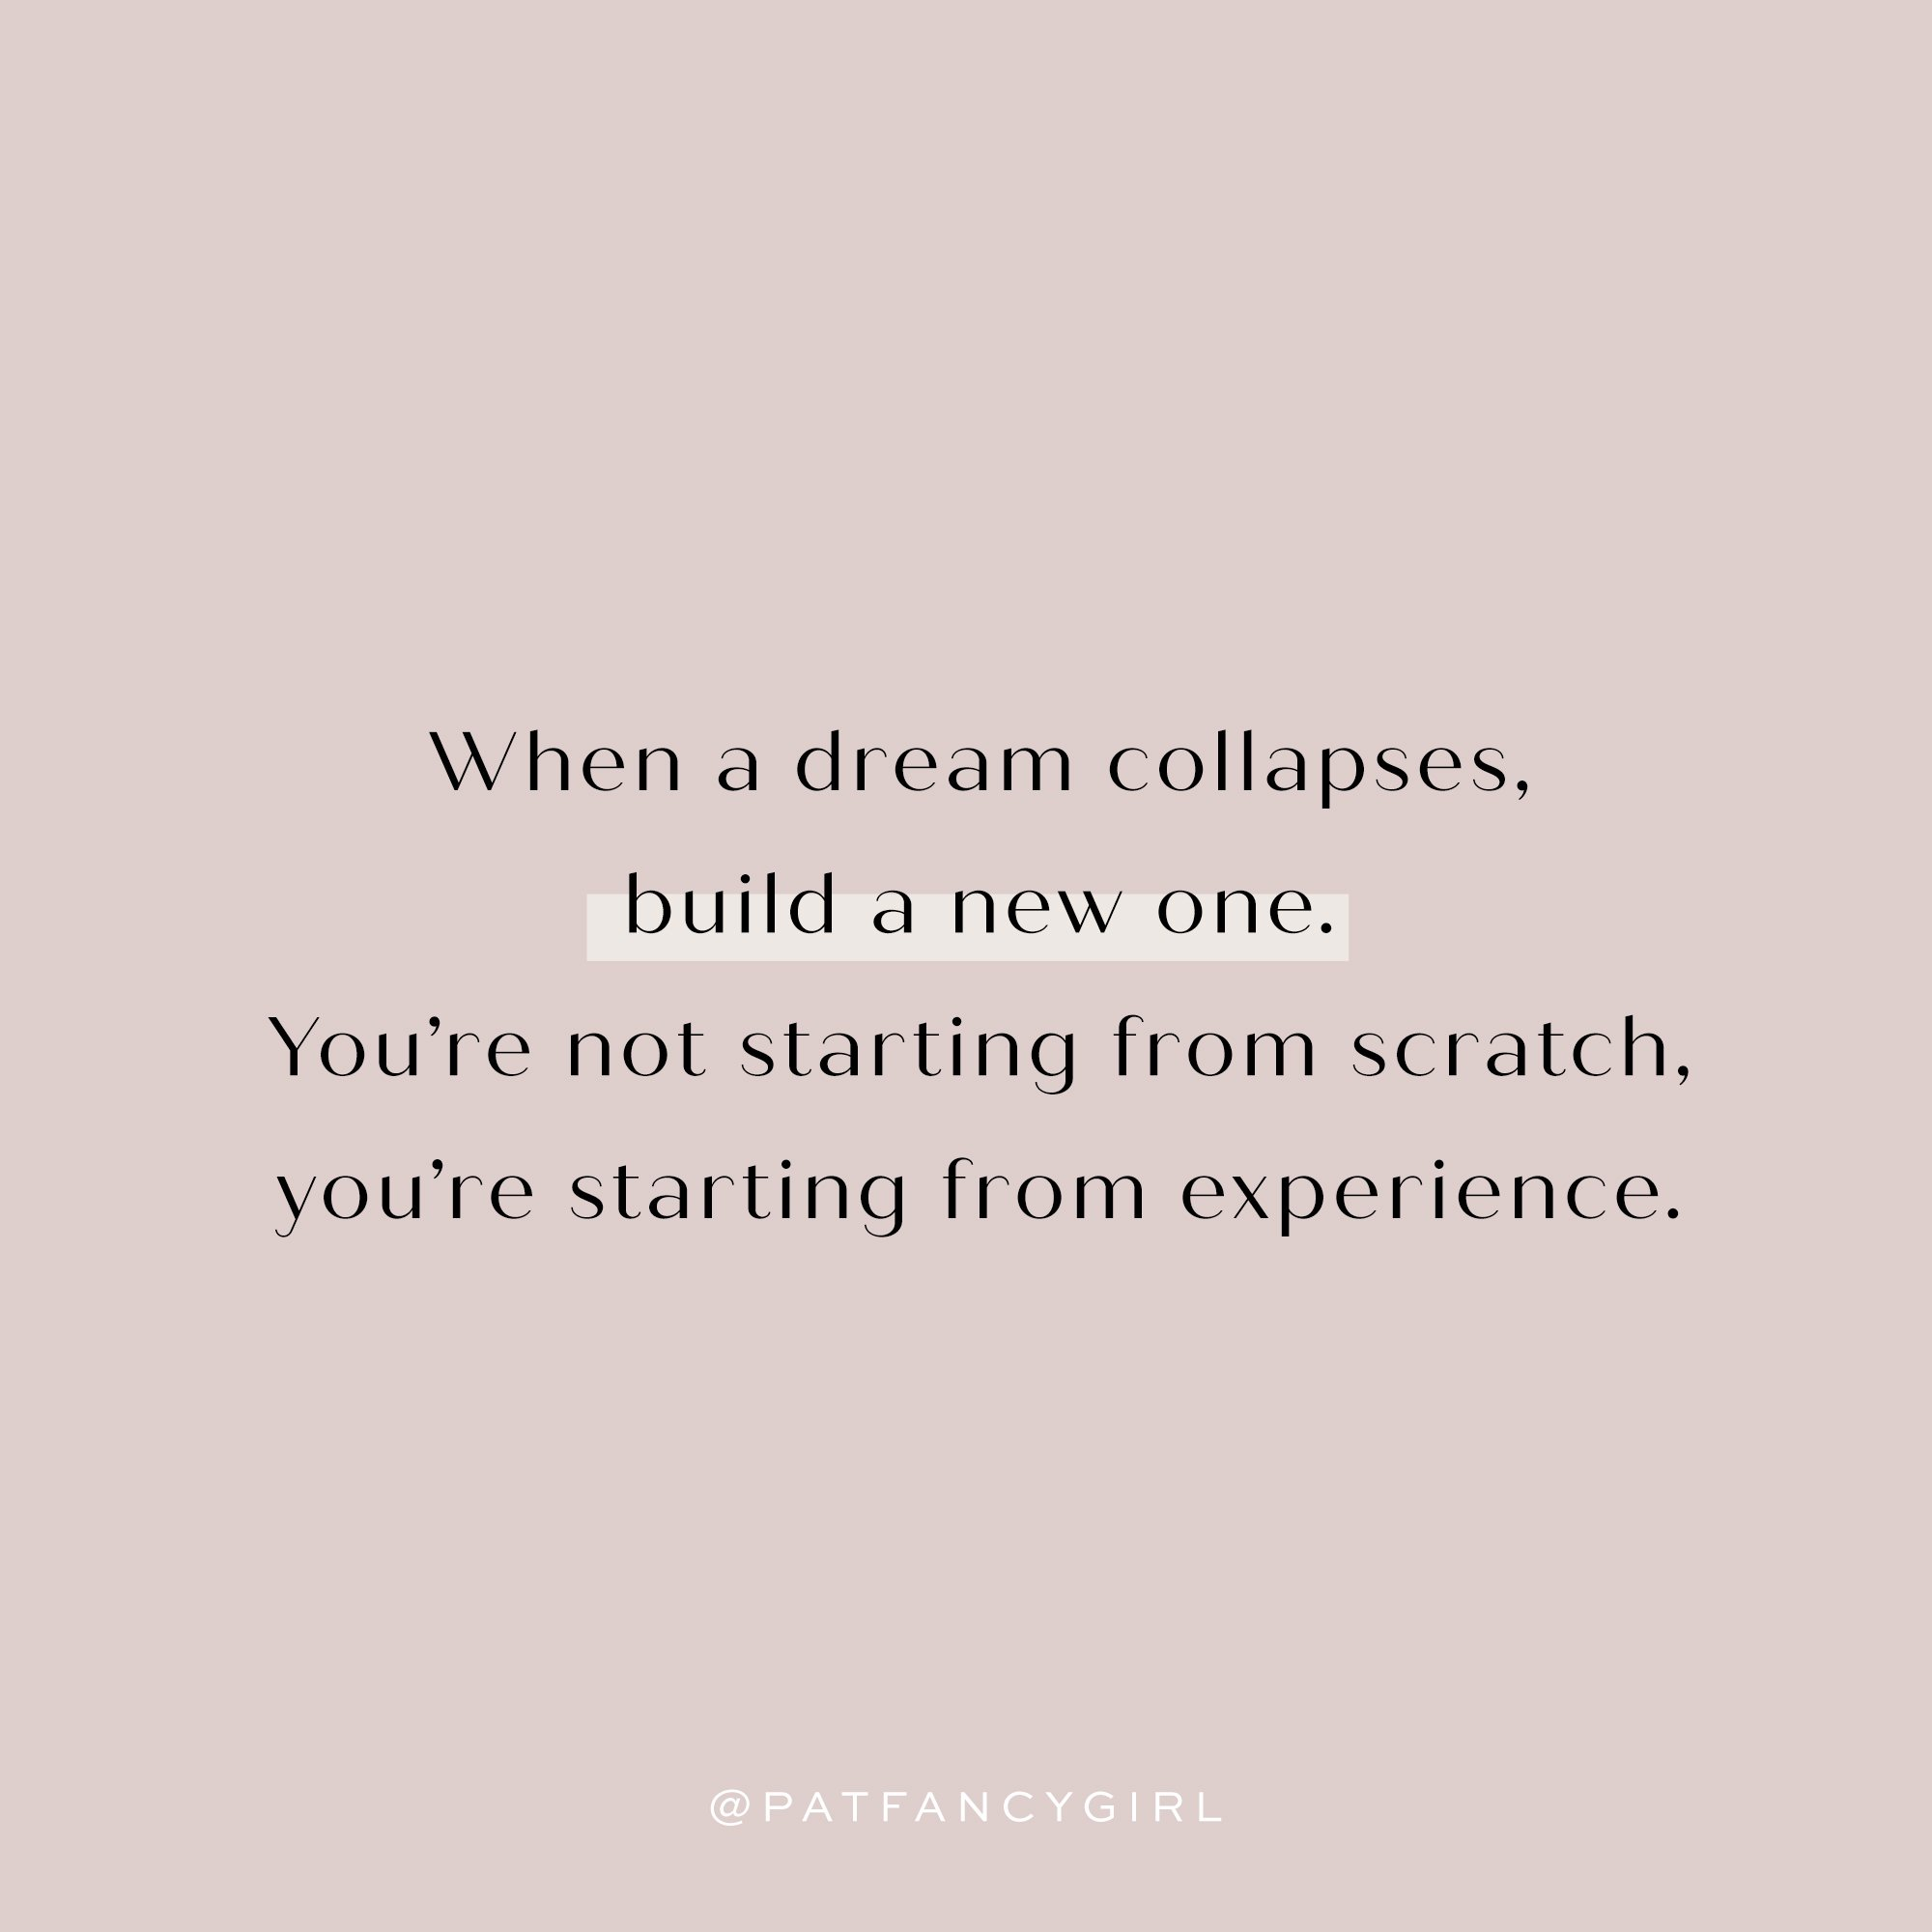 When a dream collapses, build a new one. You're not starting from scratch, you're starting from experience. Mel Robbins